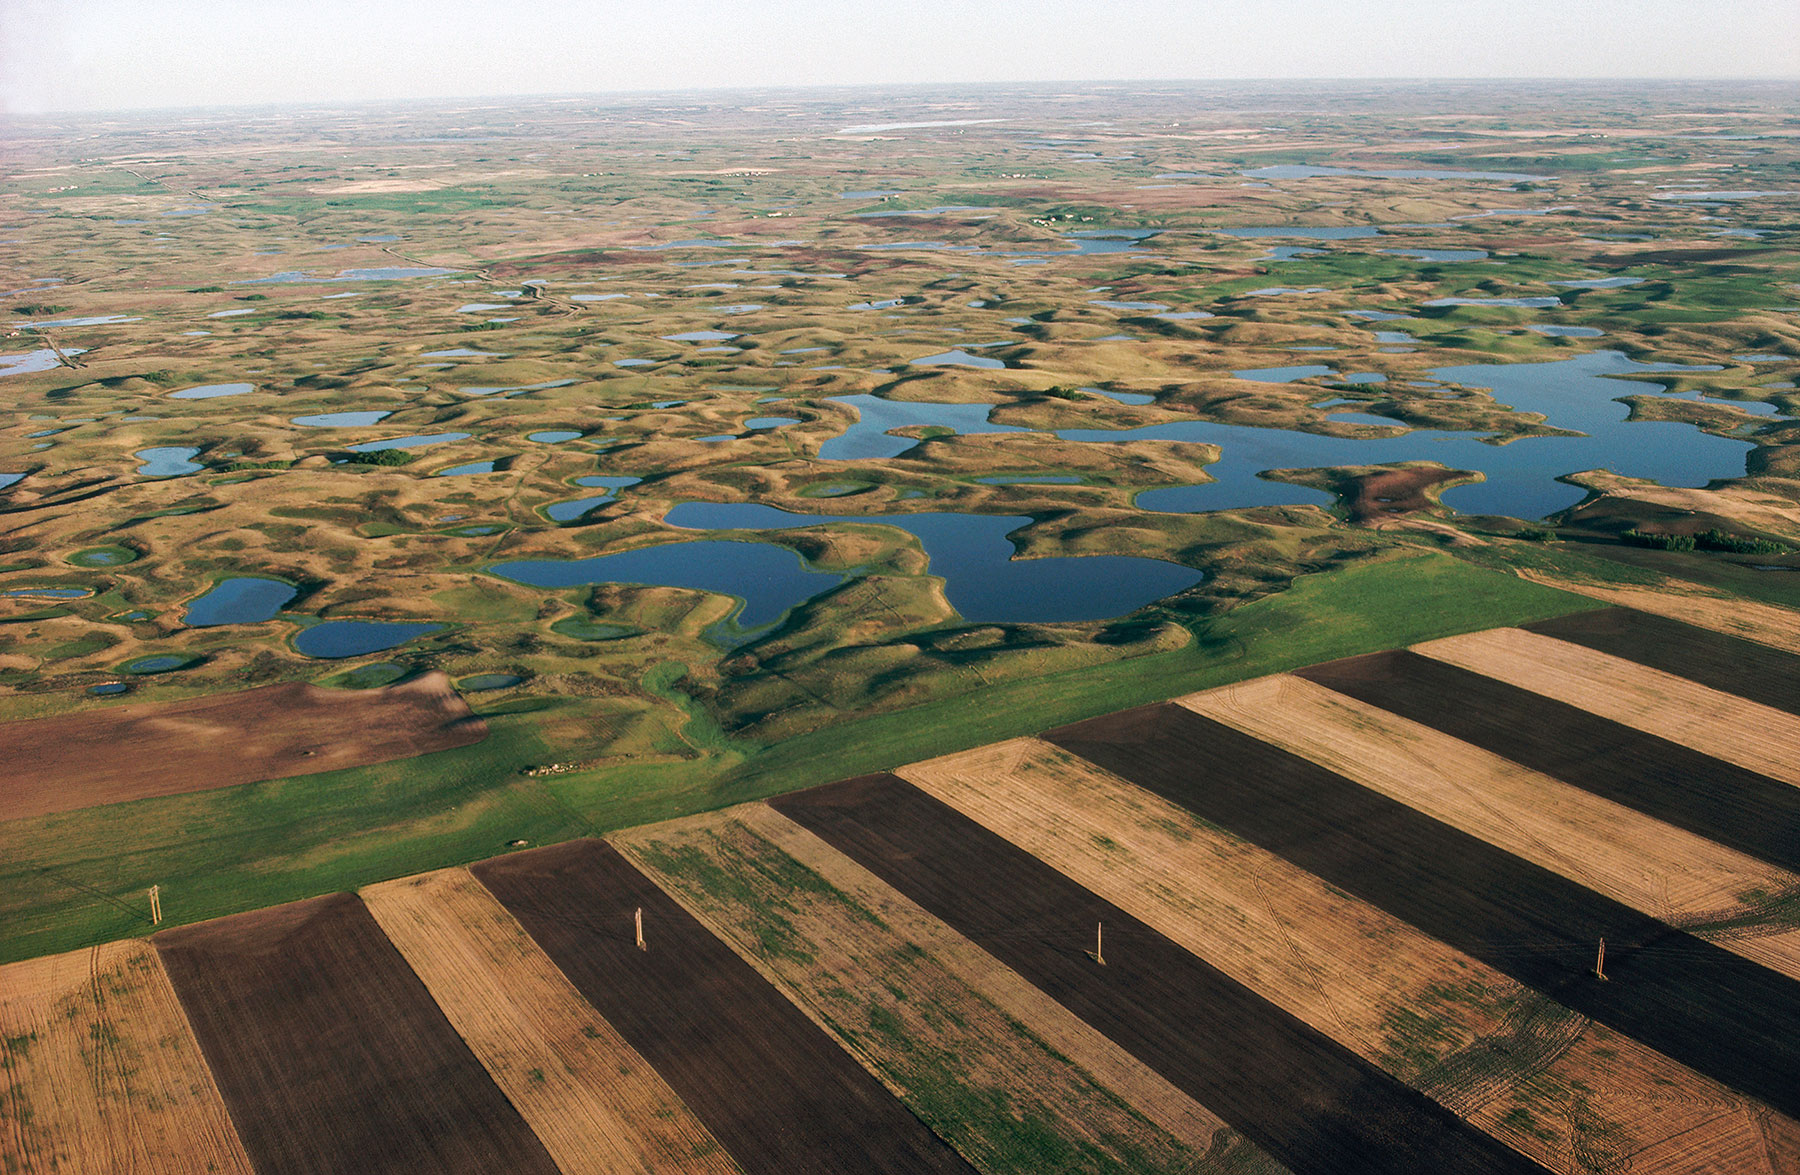 Croplands have long been claiming North Dakota's prairie potholes. The state's current energy boom only adds to pressure on habitat. Photo Credit: Jim Brandenburg/Minden Pictures